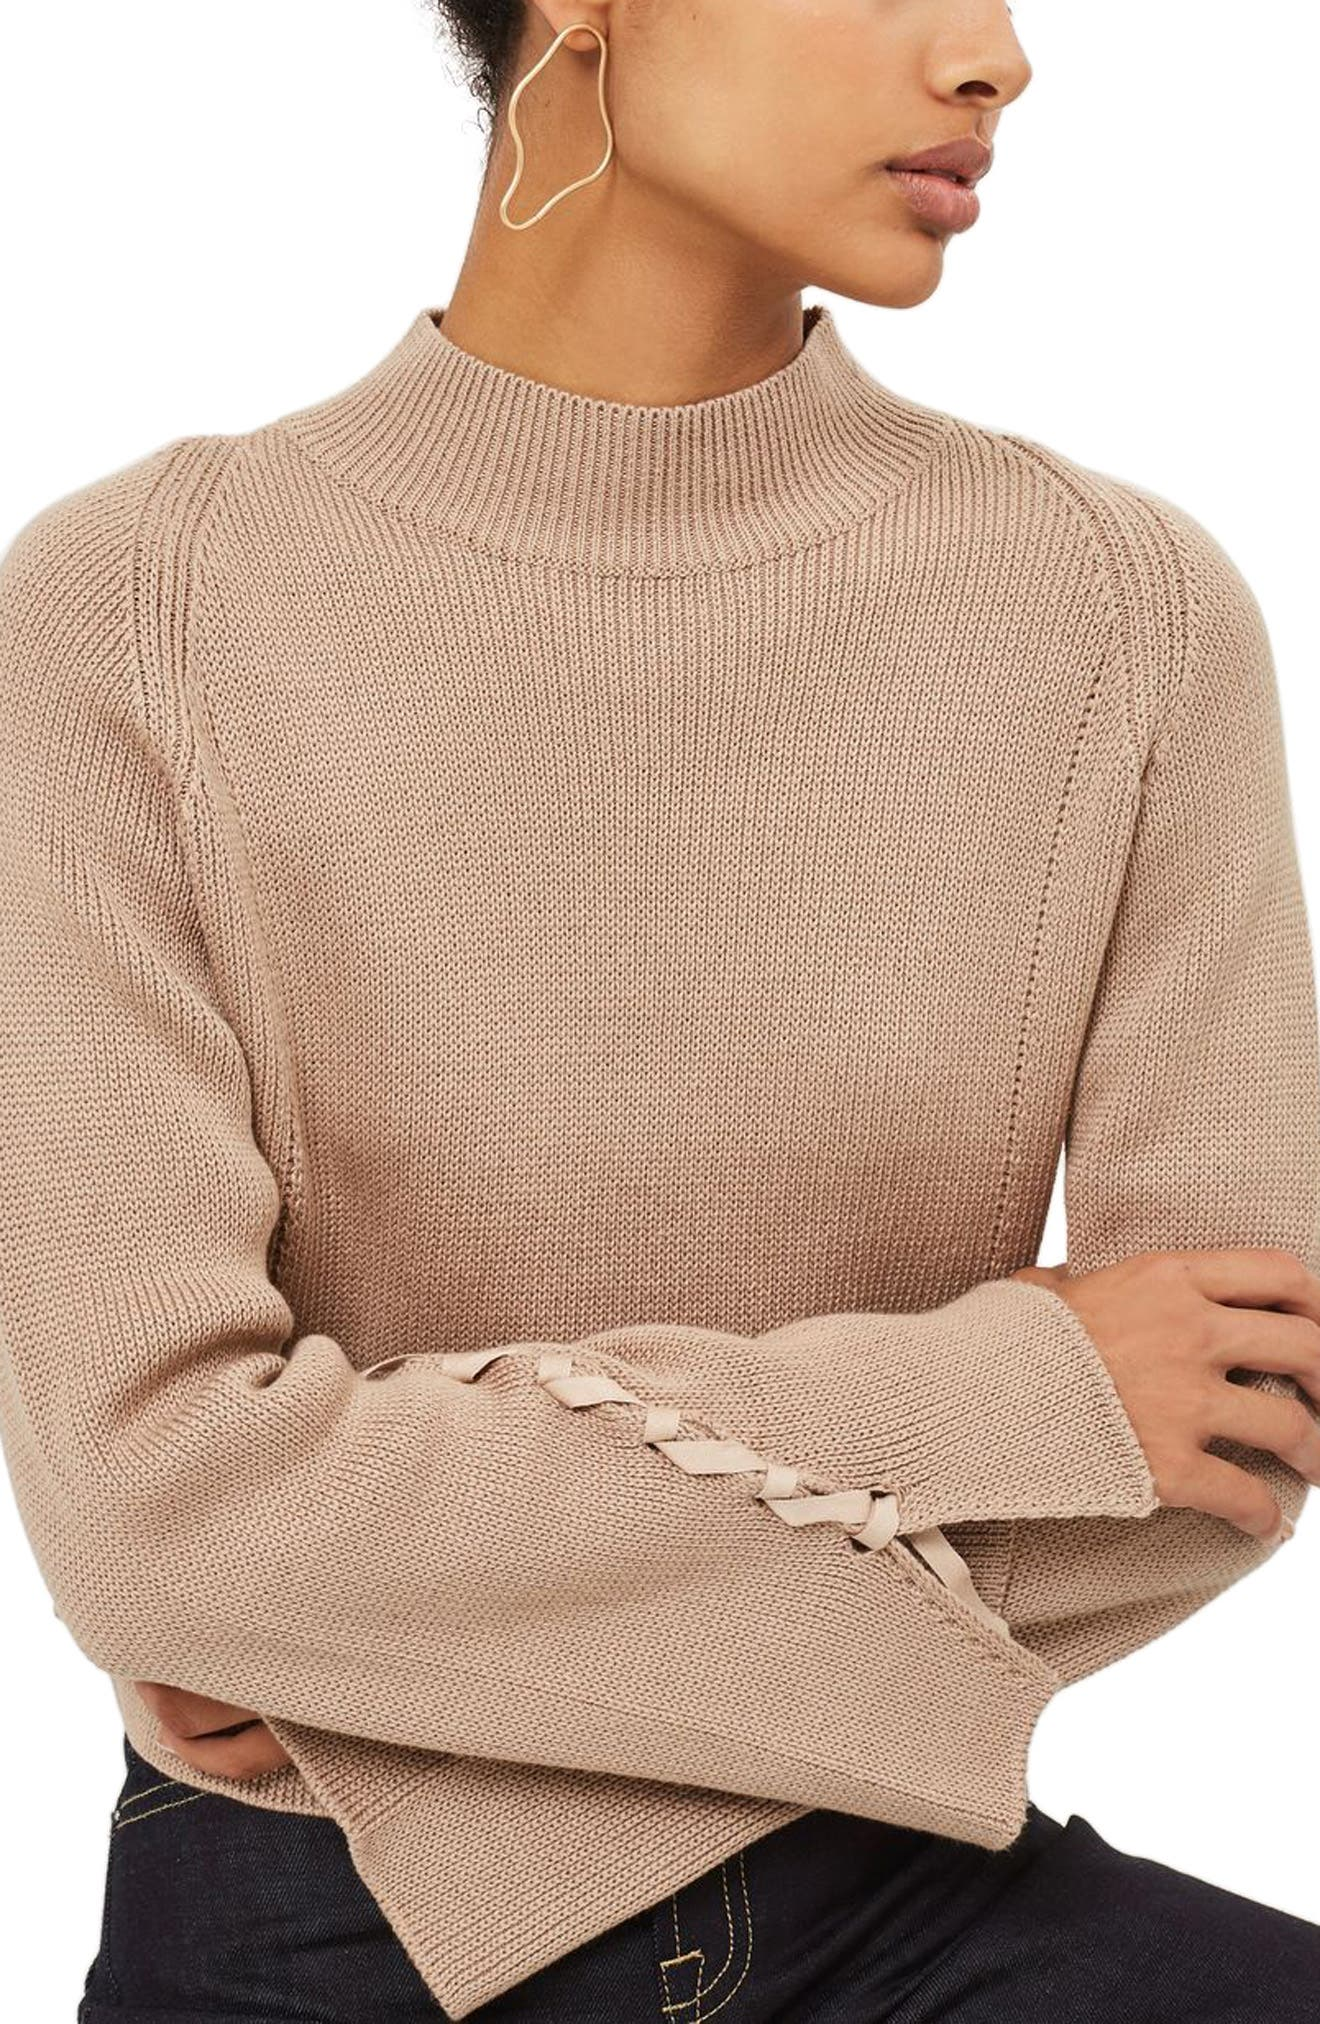 Lace Sleeve Funnel Neck Sweater,                         Main,                         color, Mink